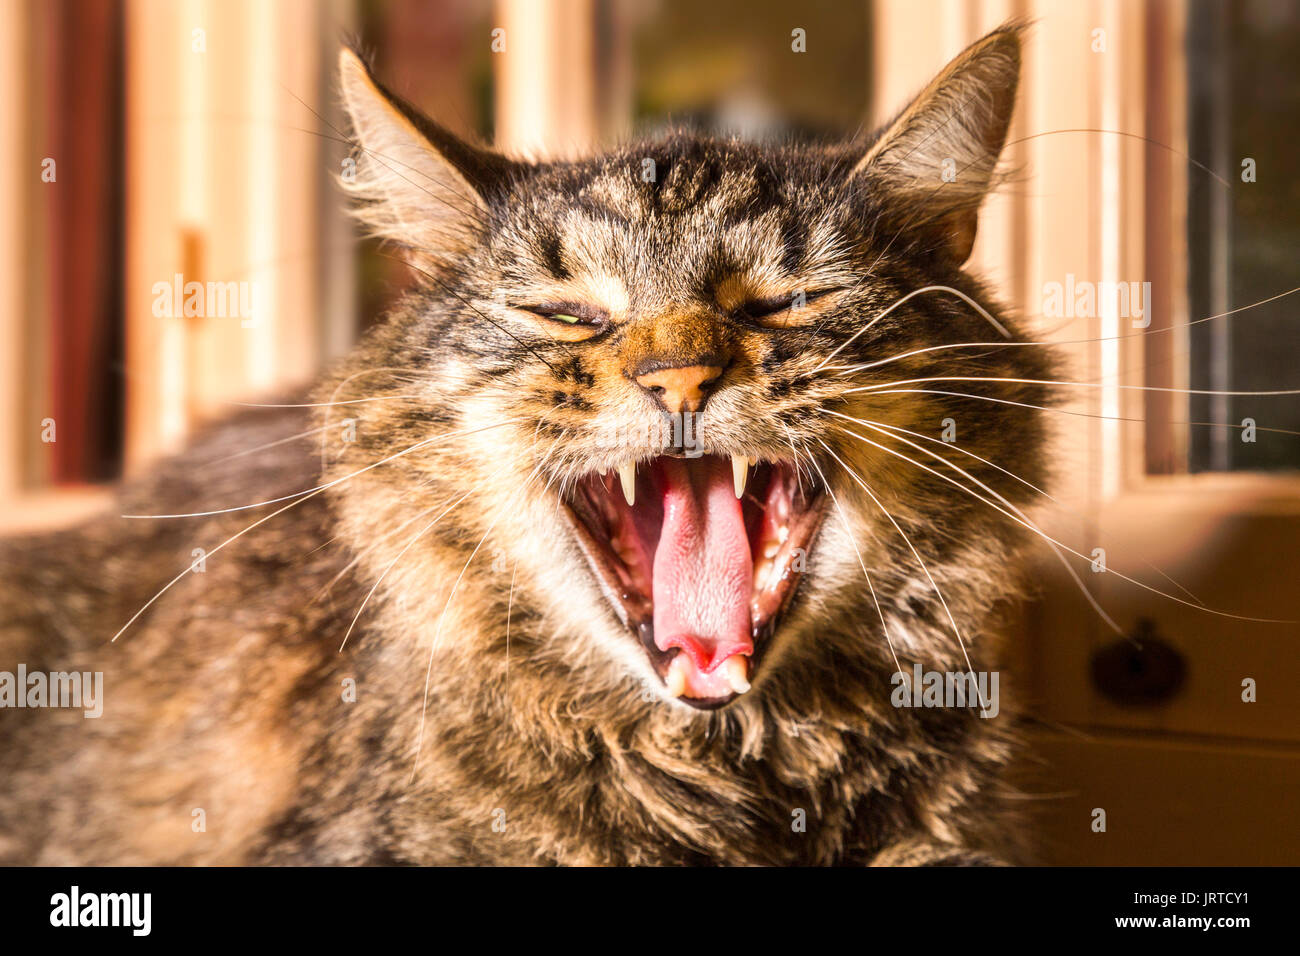 Close up of yawning, contented tortoiseshell cat, sitting on the back of the sofa in front of windows. - Stock Image